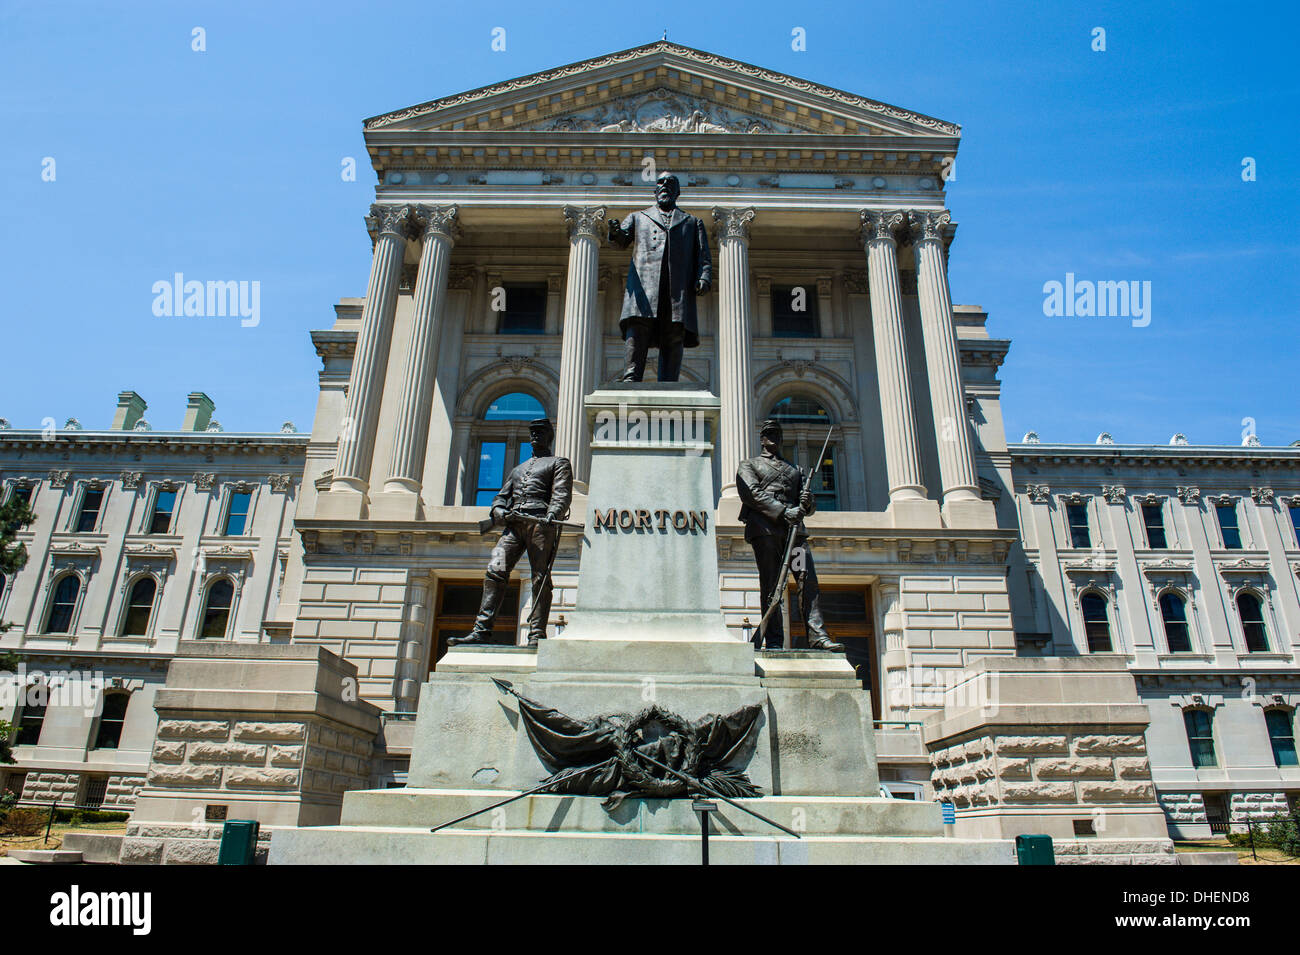 Indiana Statehouse, the state capitol building, Indianapolis, Indiana, United States of America, North America - Stock Image